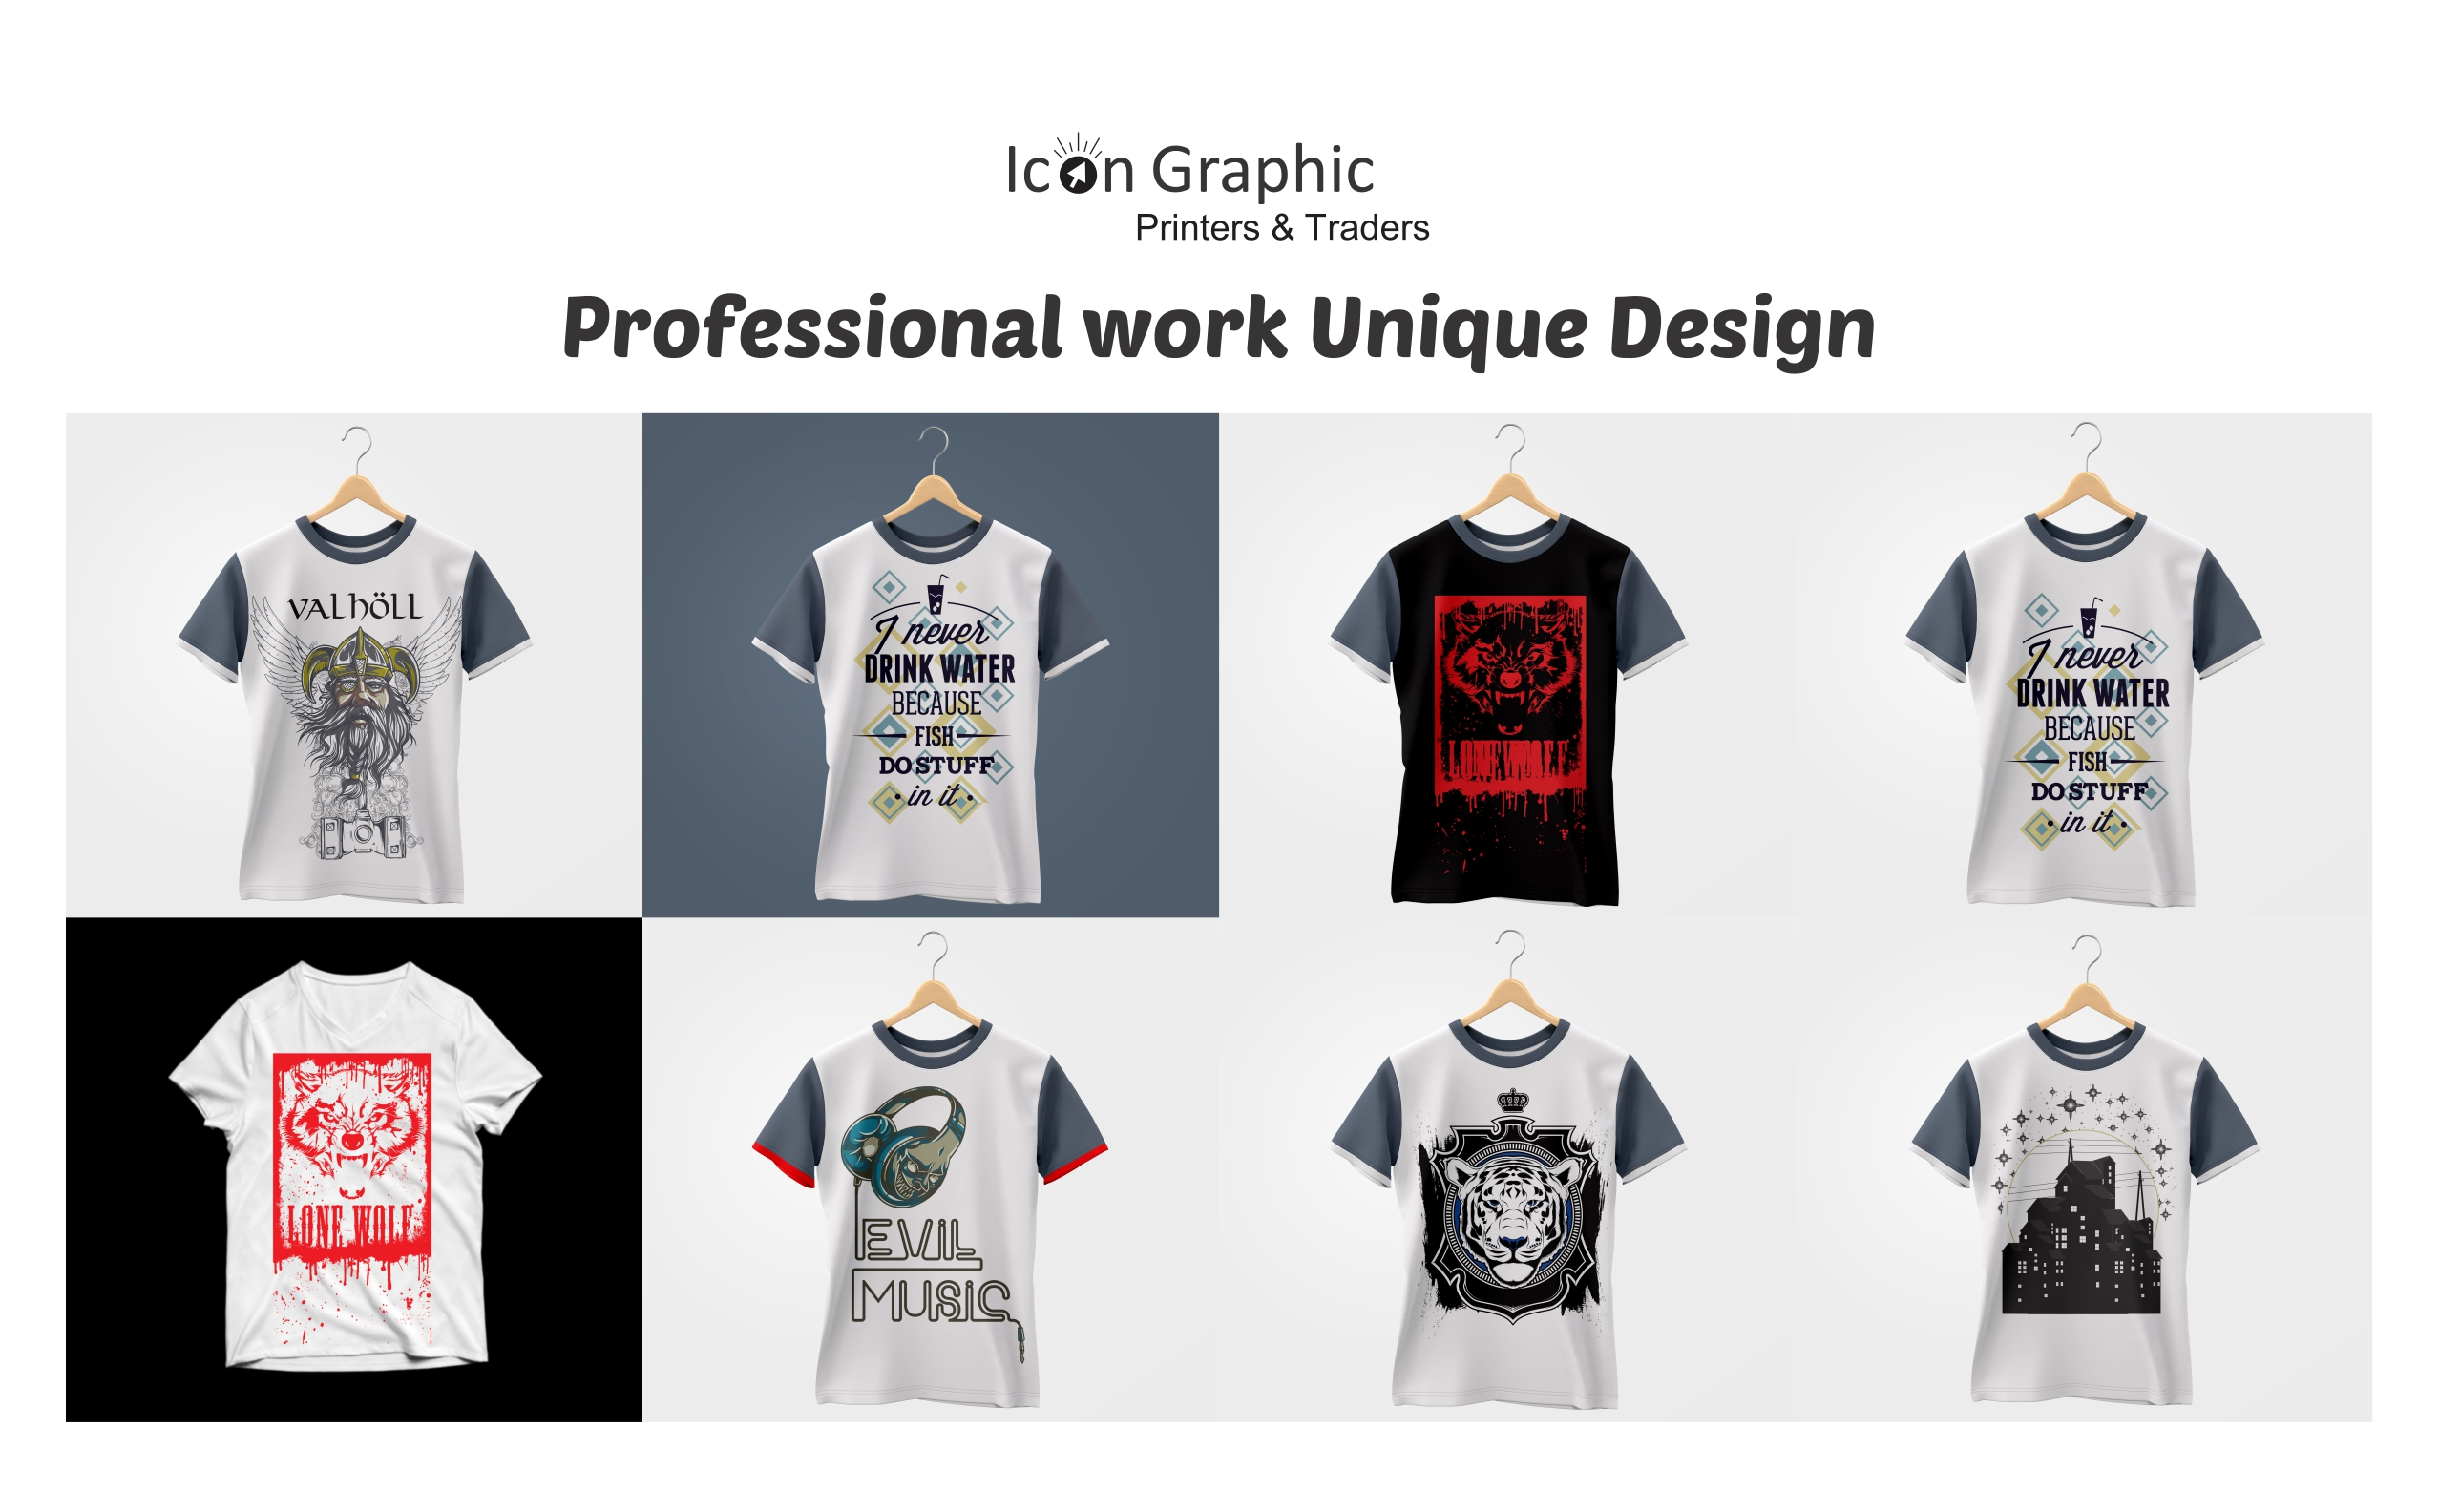 I will design an unique and professional t shirt with your choice